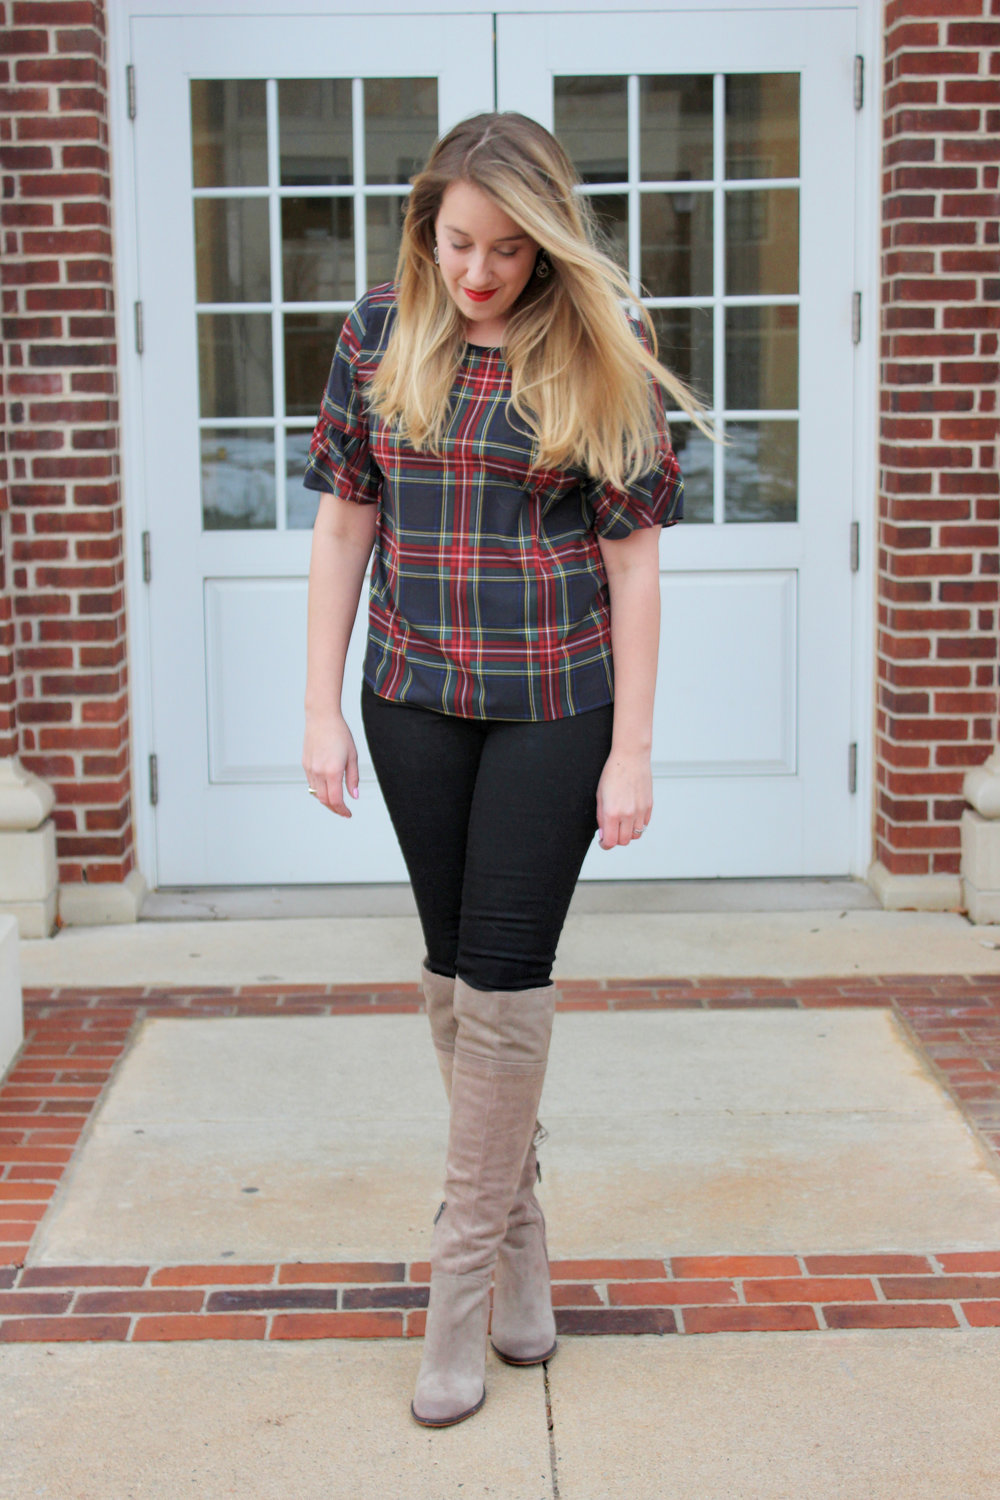 Plaid, the Color of the Season: How to Wear it and What to Pair With It